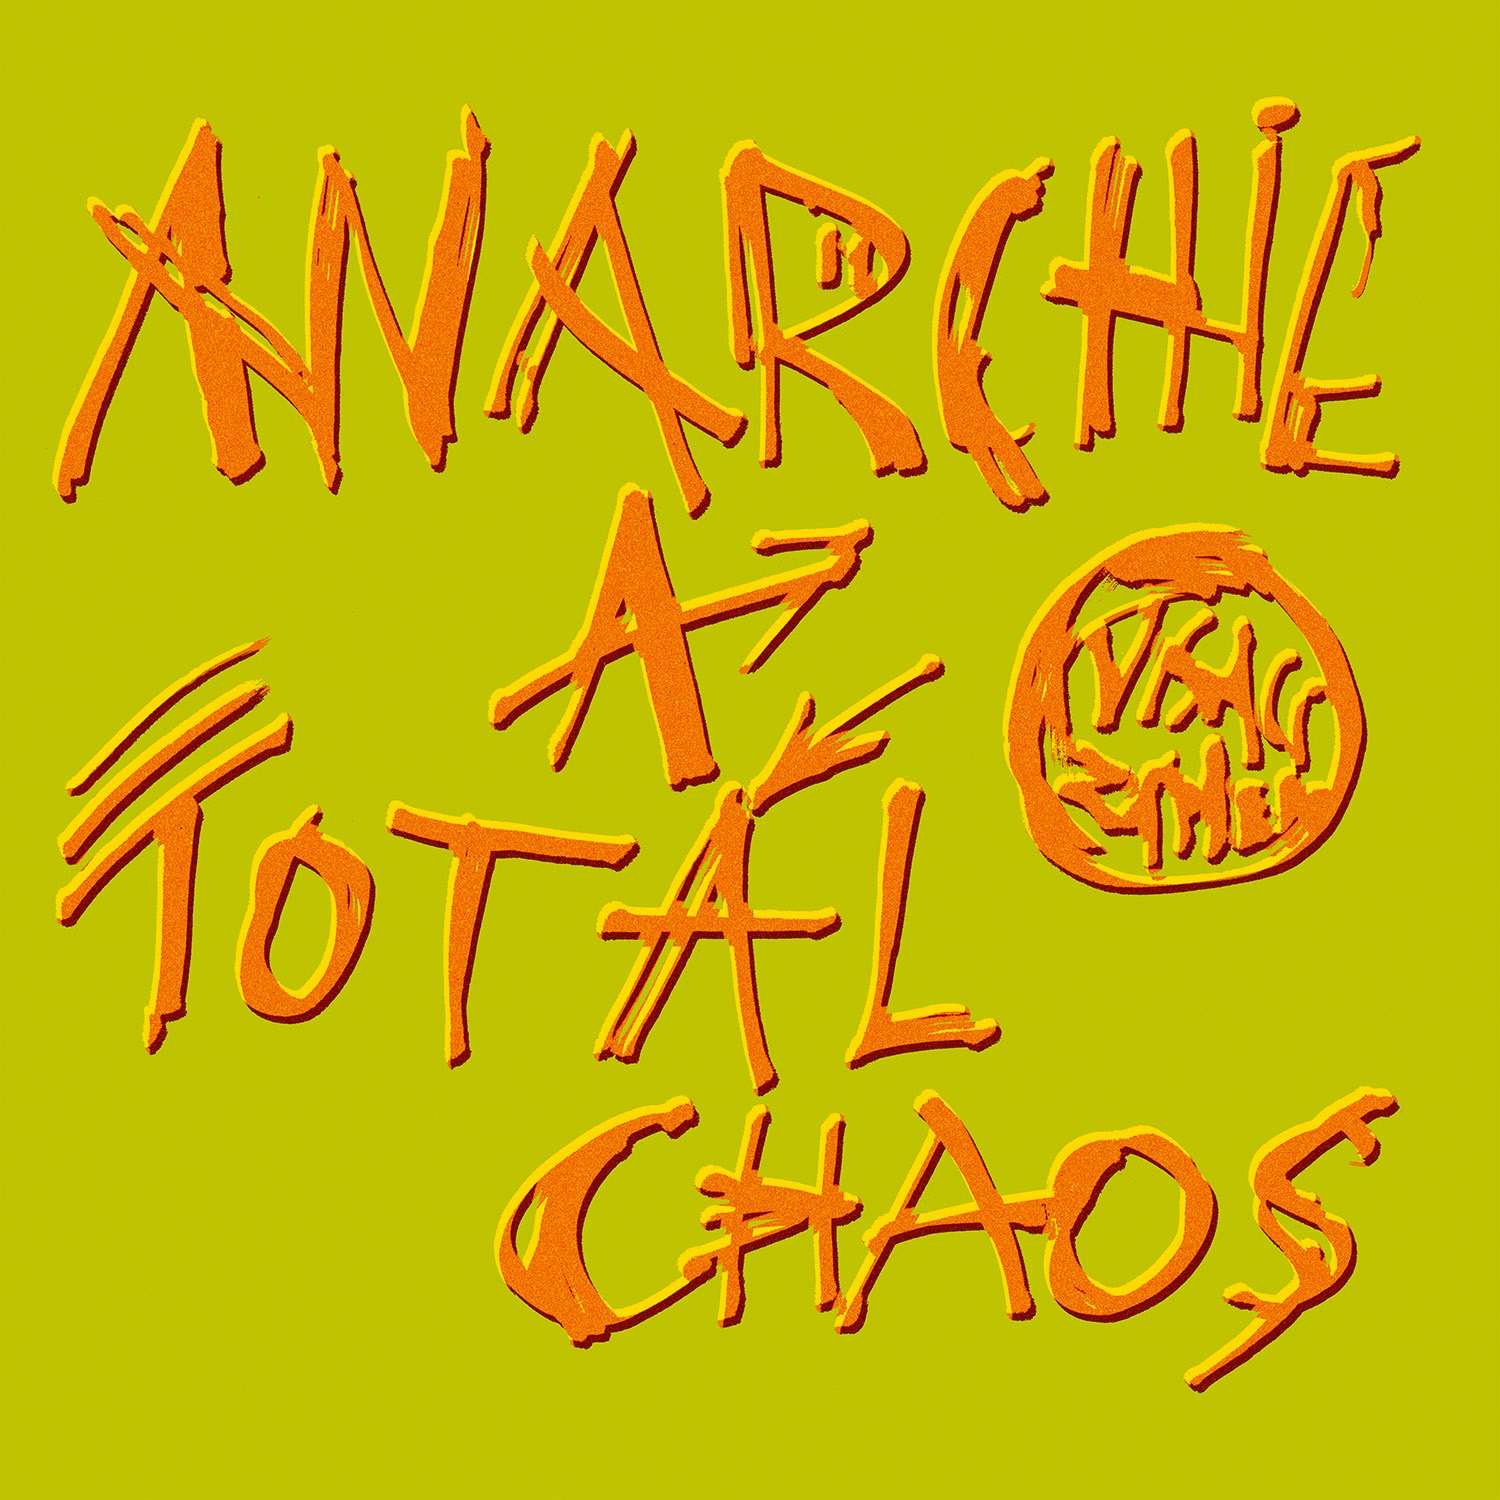 Visací Zámek - Anarchie a total chaos CD